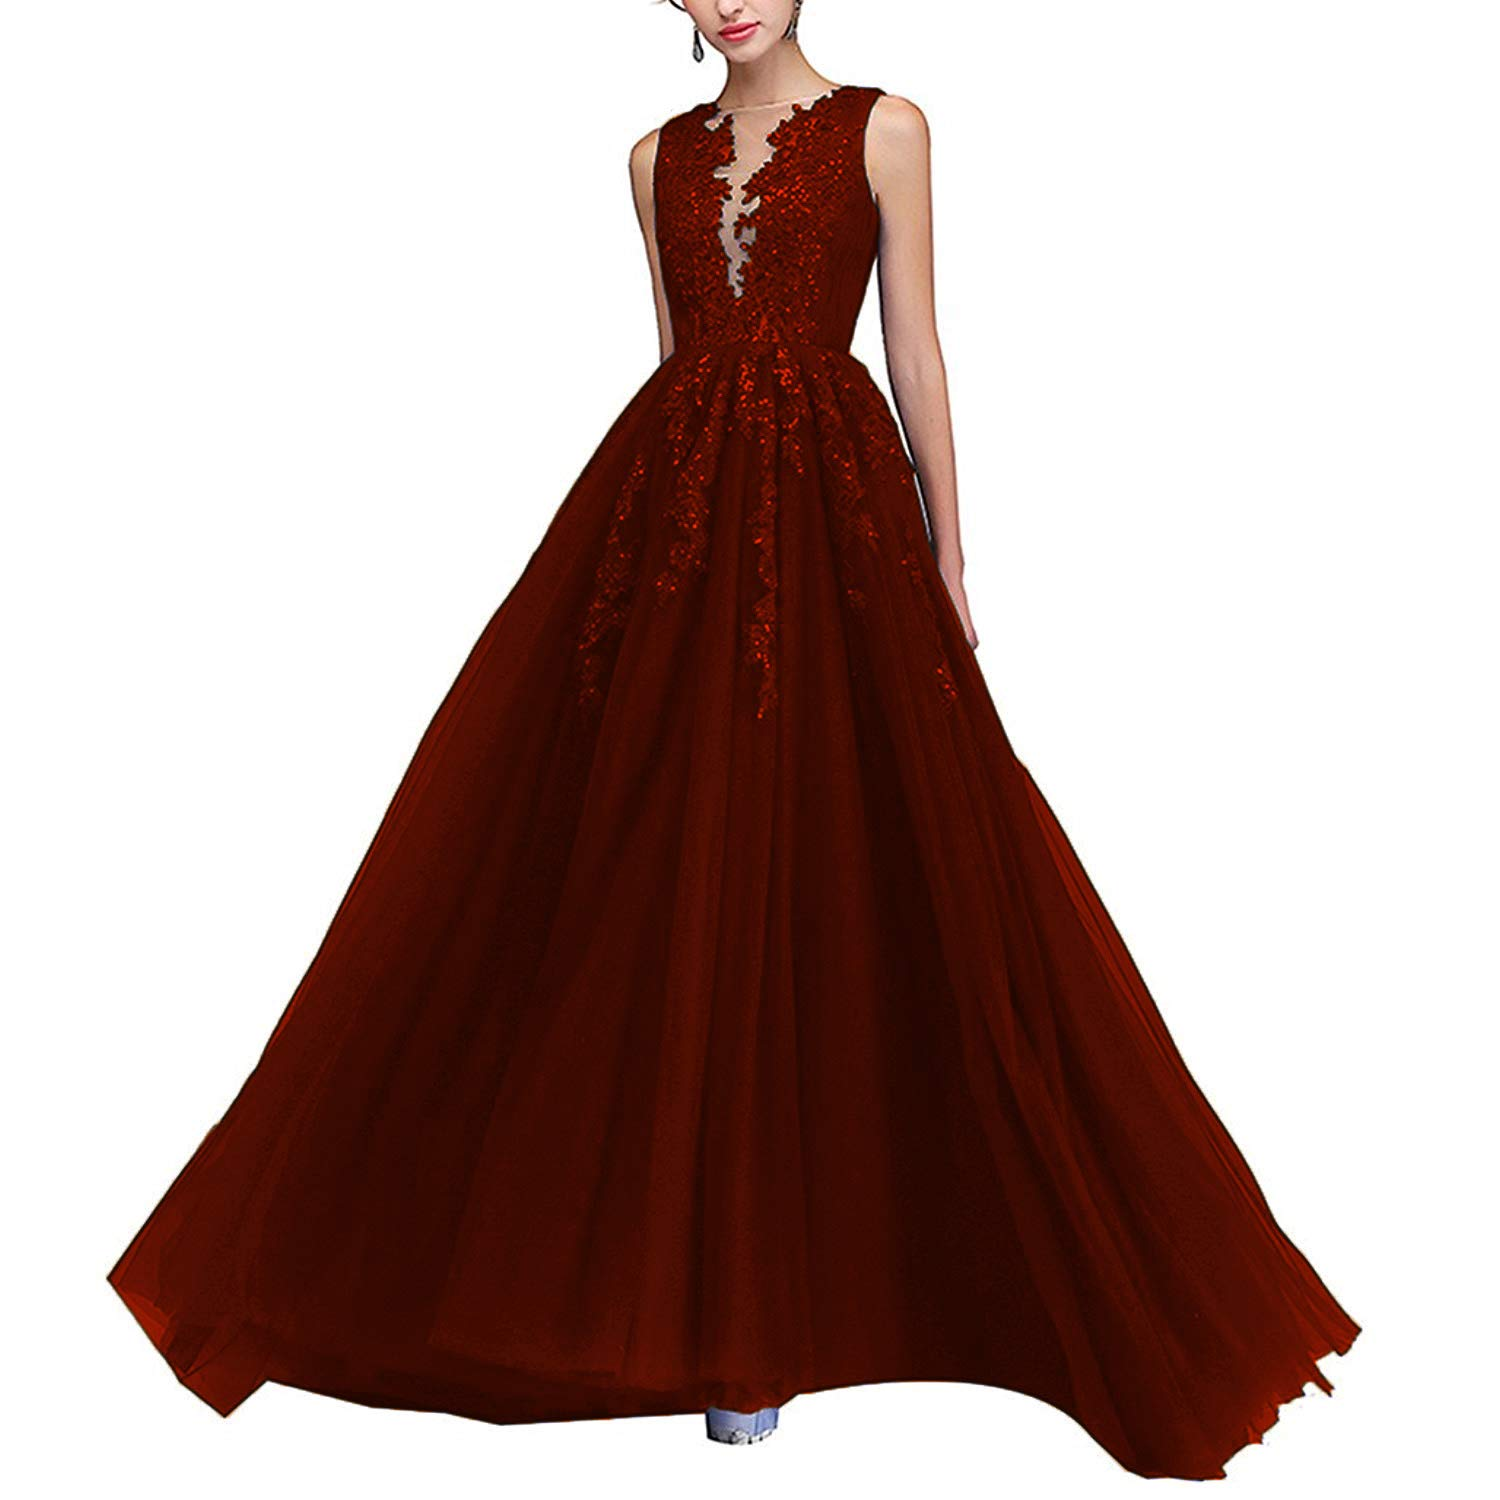 Dark Red PearlBridal Illusion Neck Lace Appliques Long Prom Dresses Beaded Tulle Evening Dress for Women Side Slit